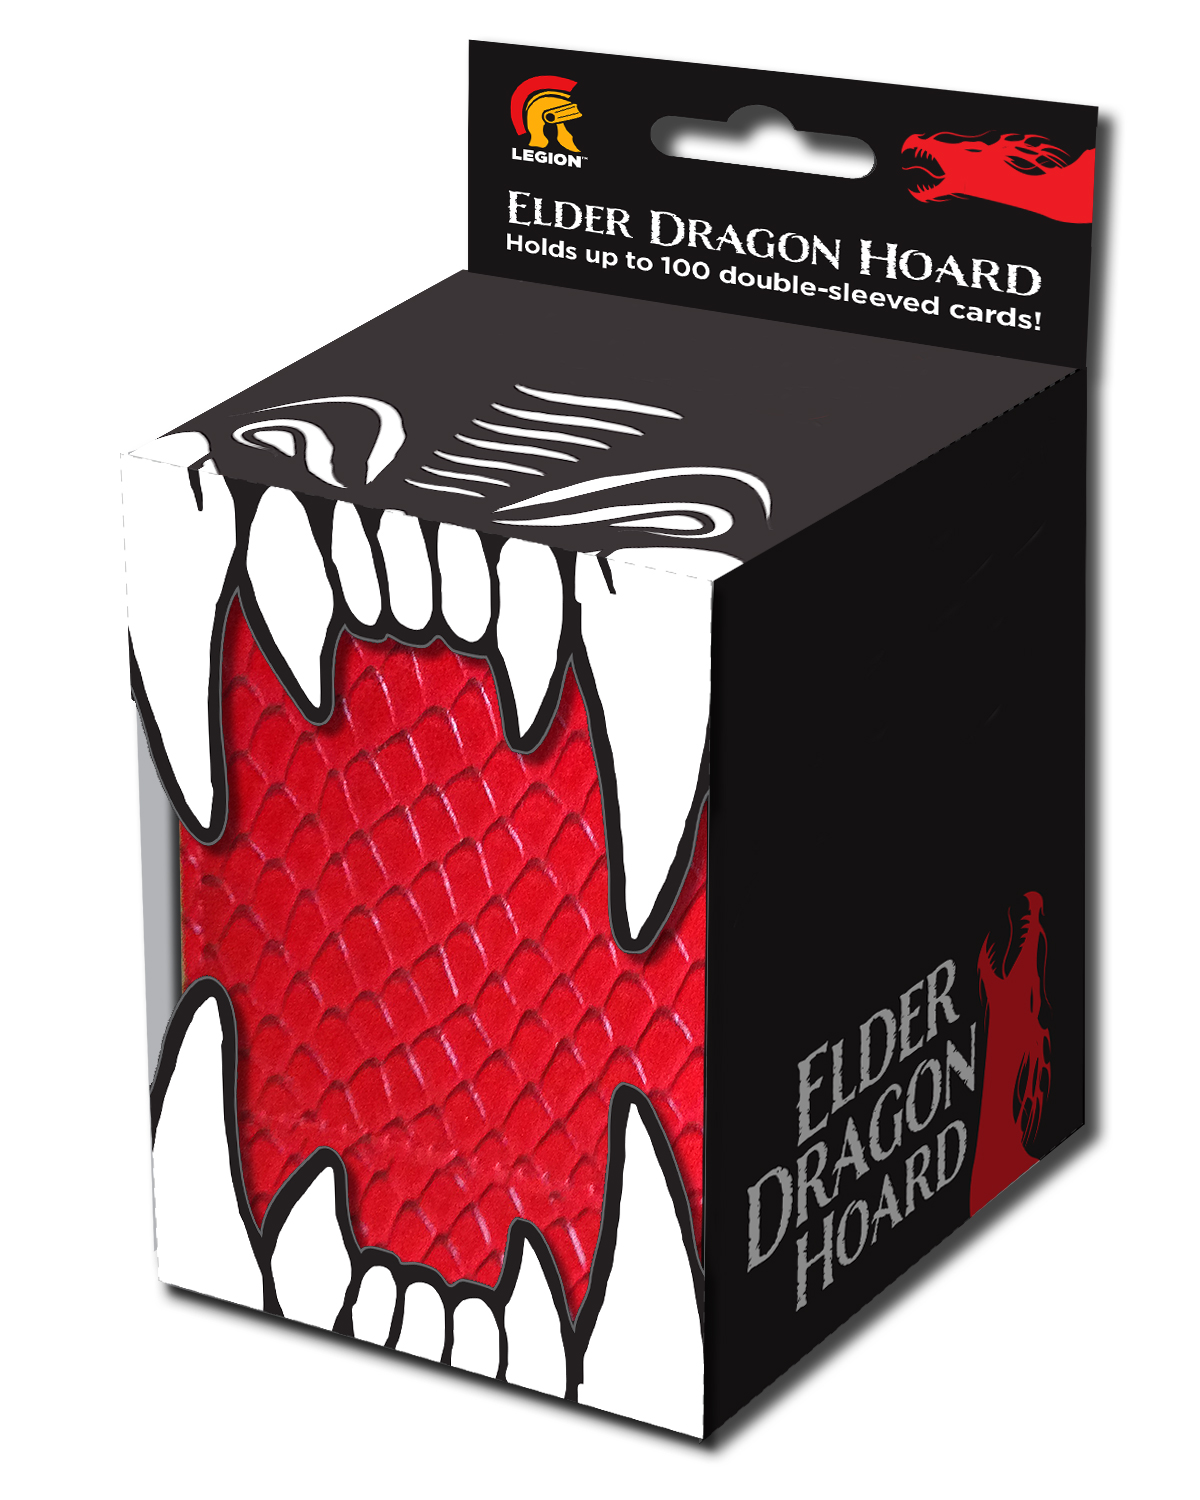 Hoard - Dragon Hide Red